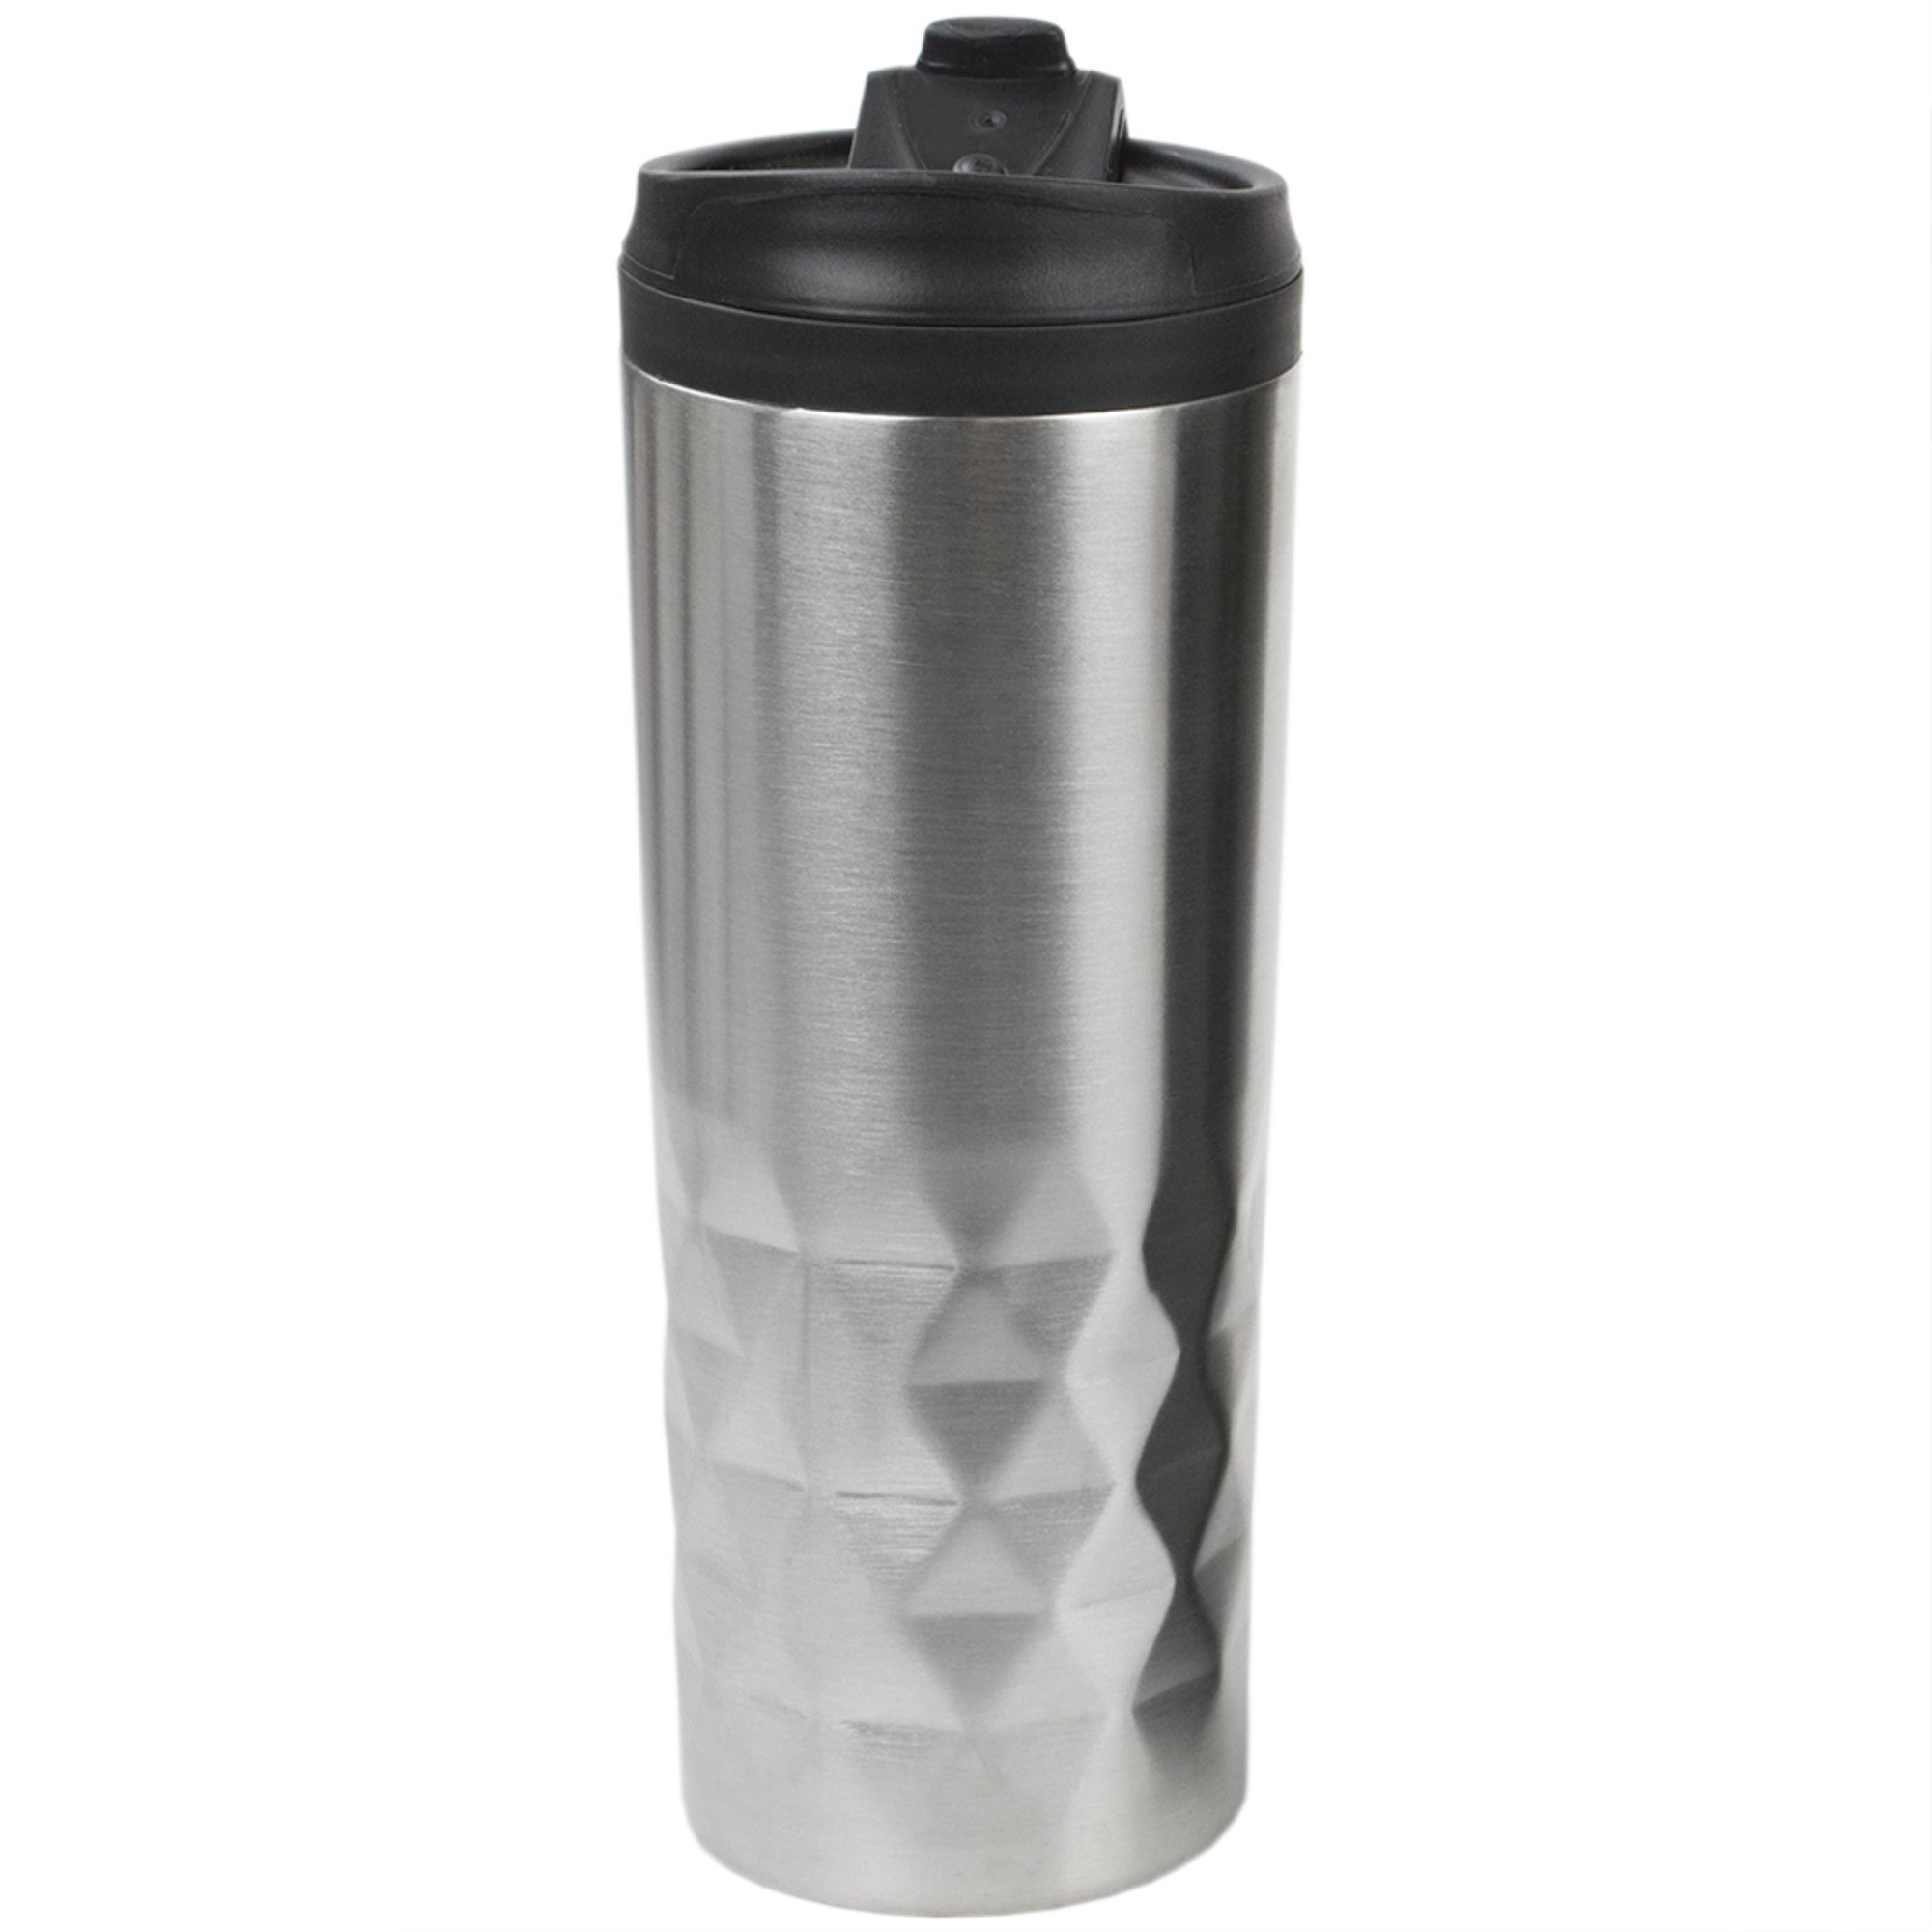 Home Basics Prism Stainless Steel 18 oz. Travel Mug, Silver - Silver